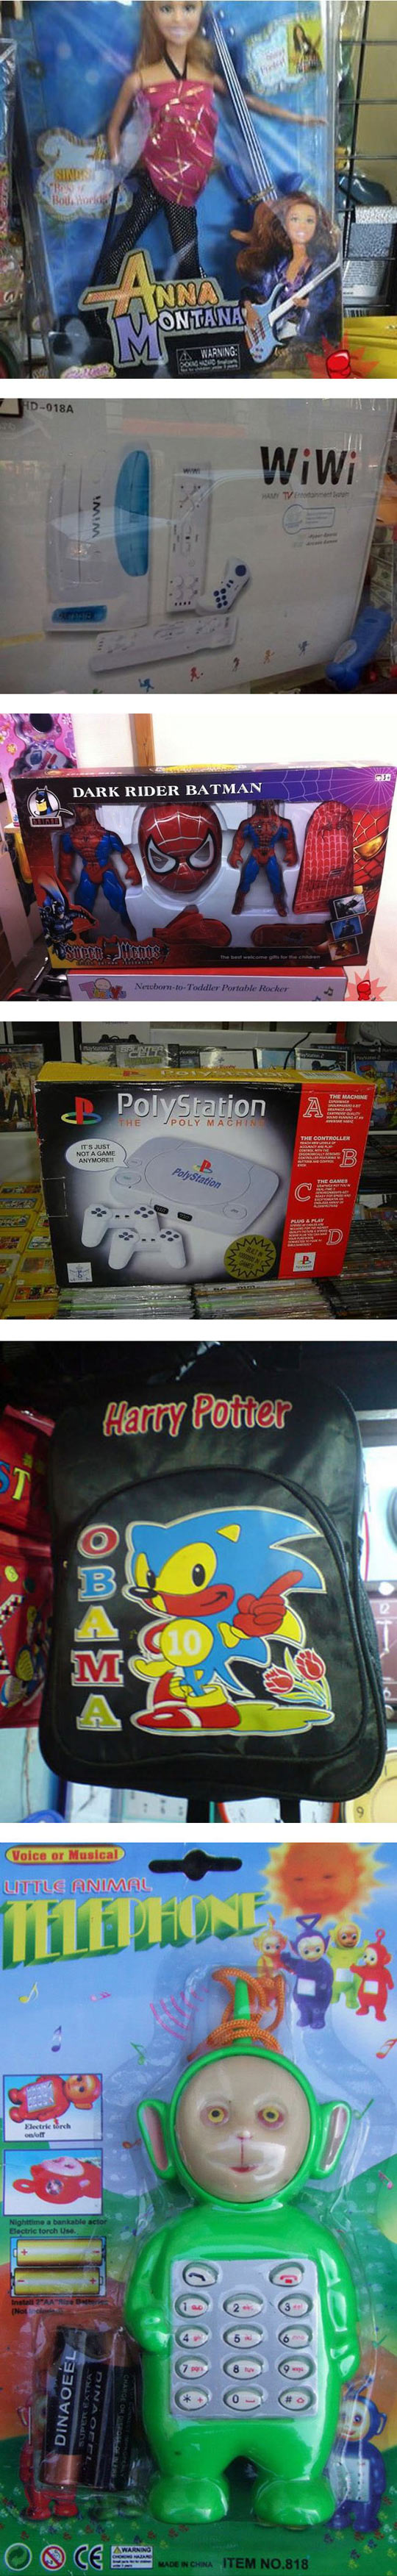 funny-China-products-toys-console-fail